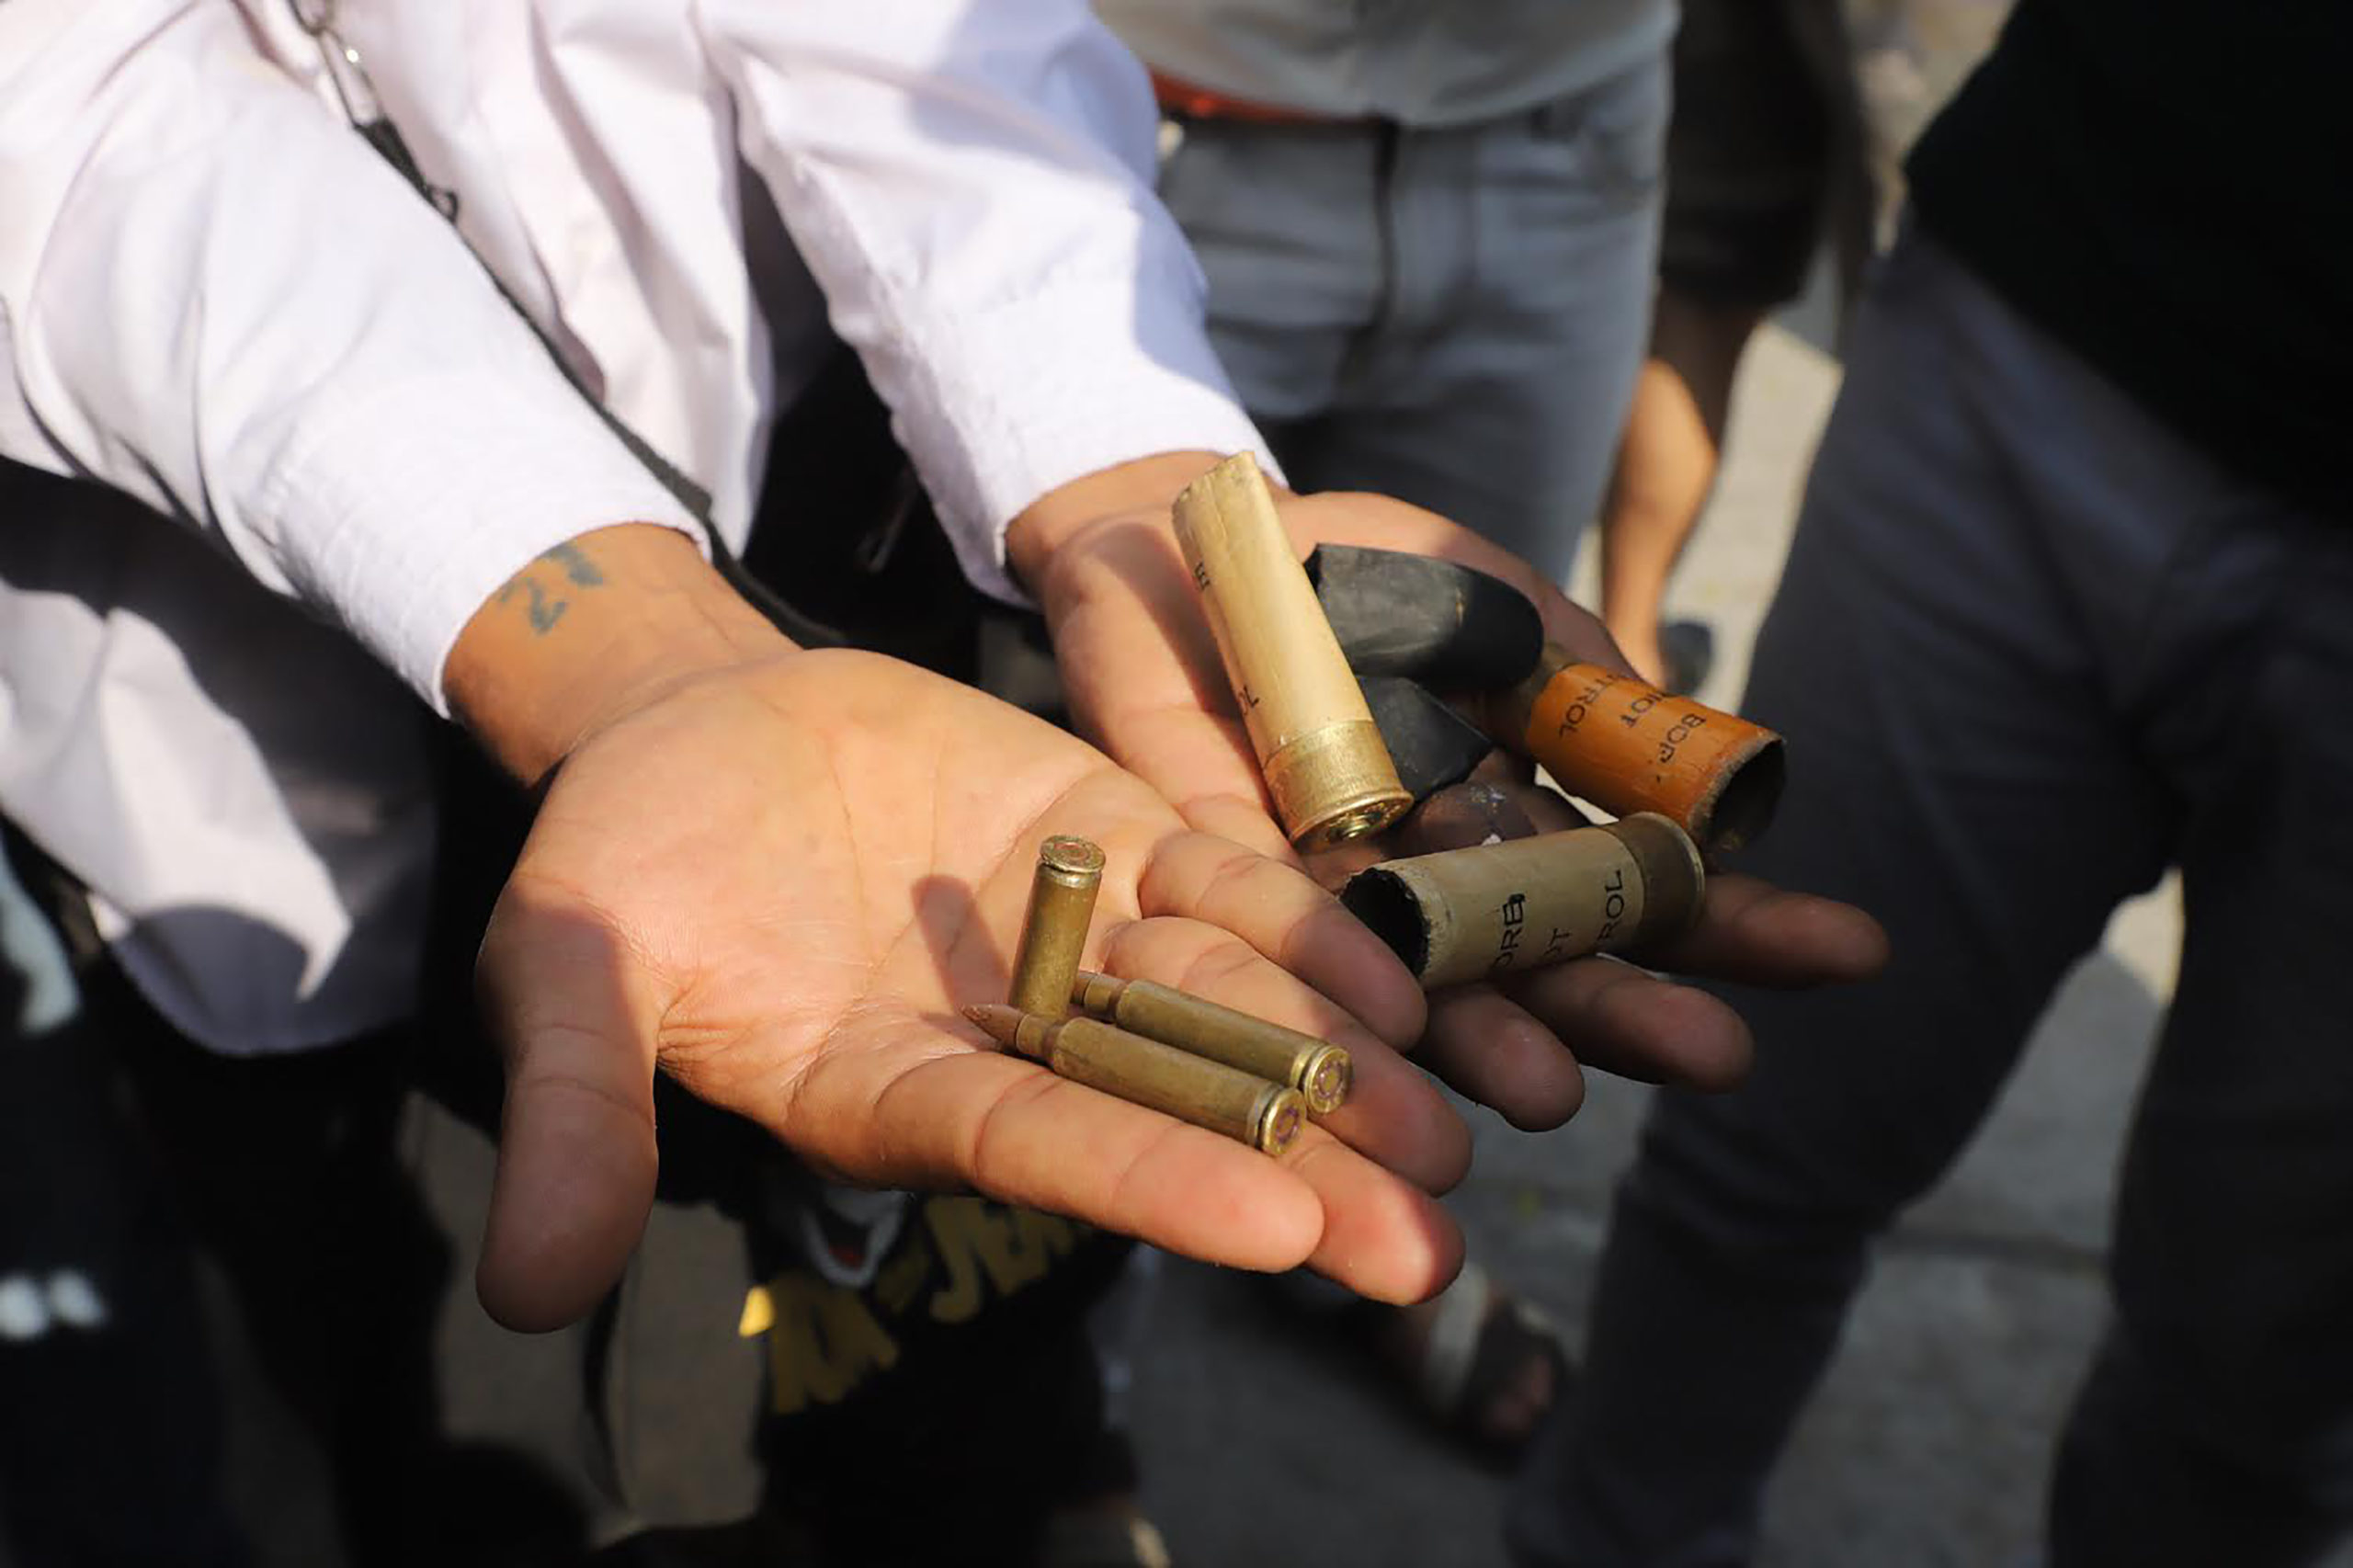 EDITORS NOTE: Graphic content / A protester holds bullet cartridges and ammunition for slingshots after security forces fired on demonstrators at a rally against the military coup in Mandalay on February 26, 2021. (Photo by STR / AFP) (Photo by STR/AFP via Getty Images)